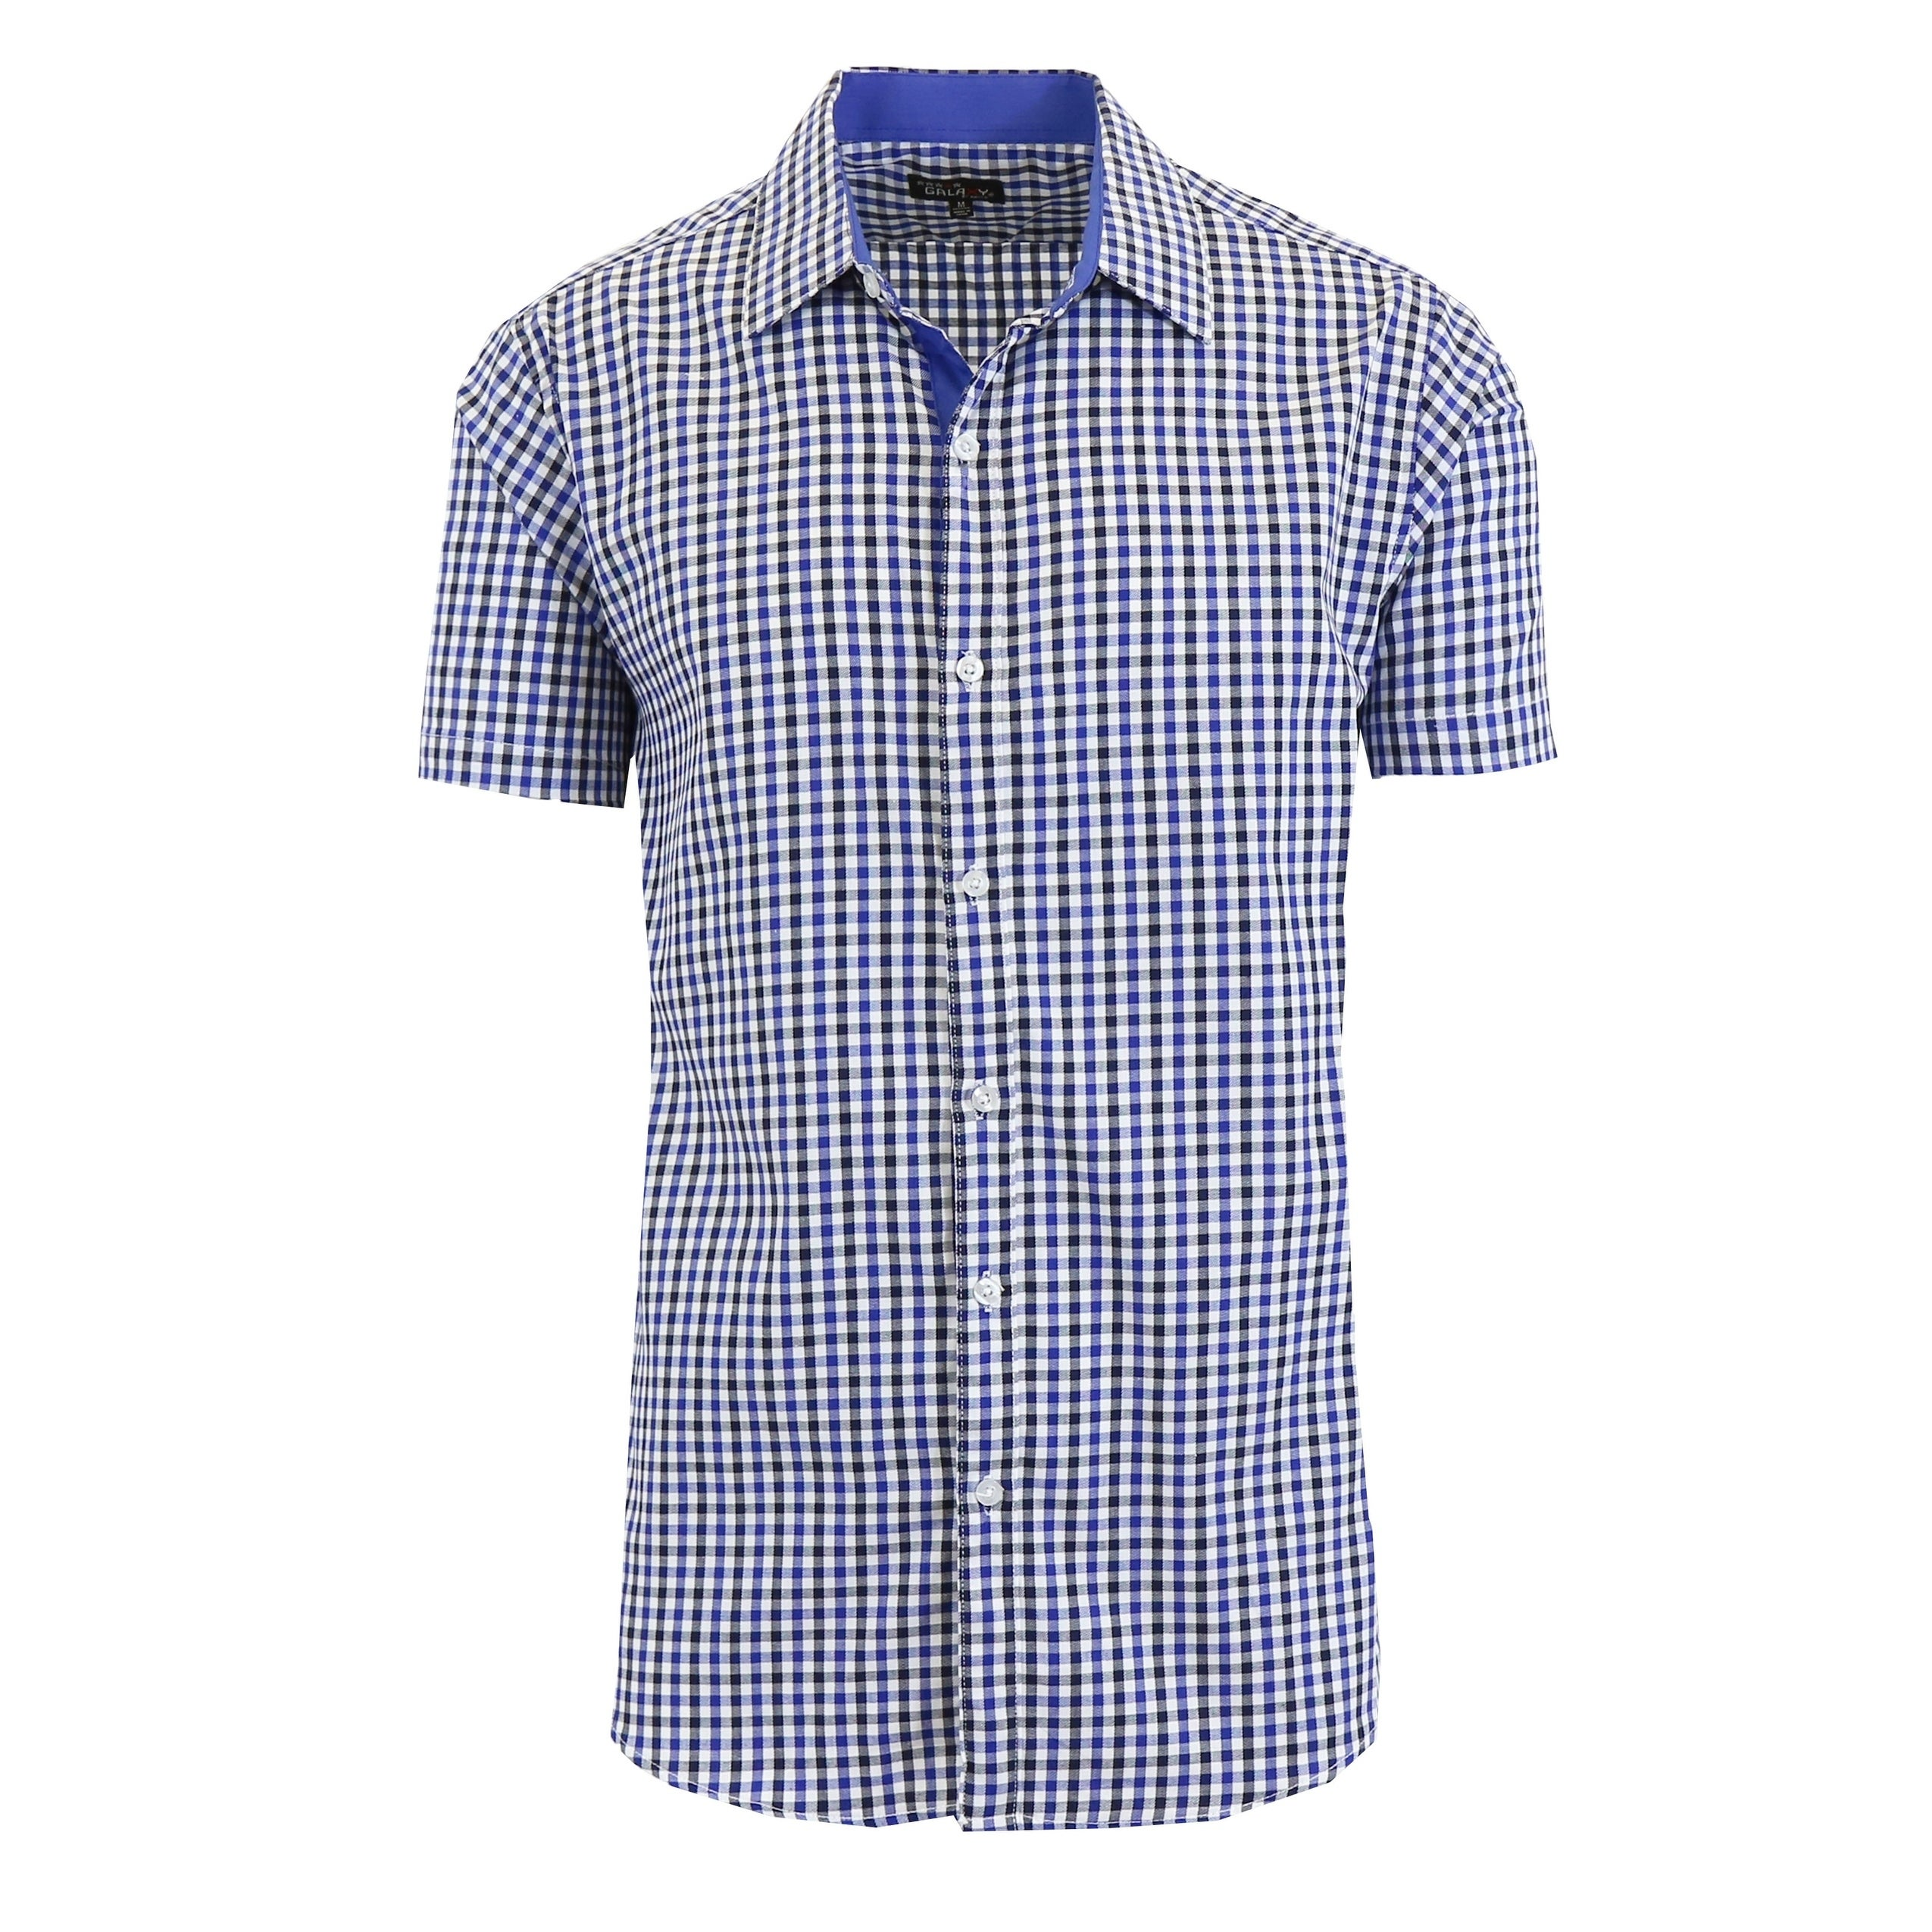 e016473b Galaxy By Harvic Men's Short Sleeve Slim Fit Gingham Casual Dress Shirts